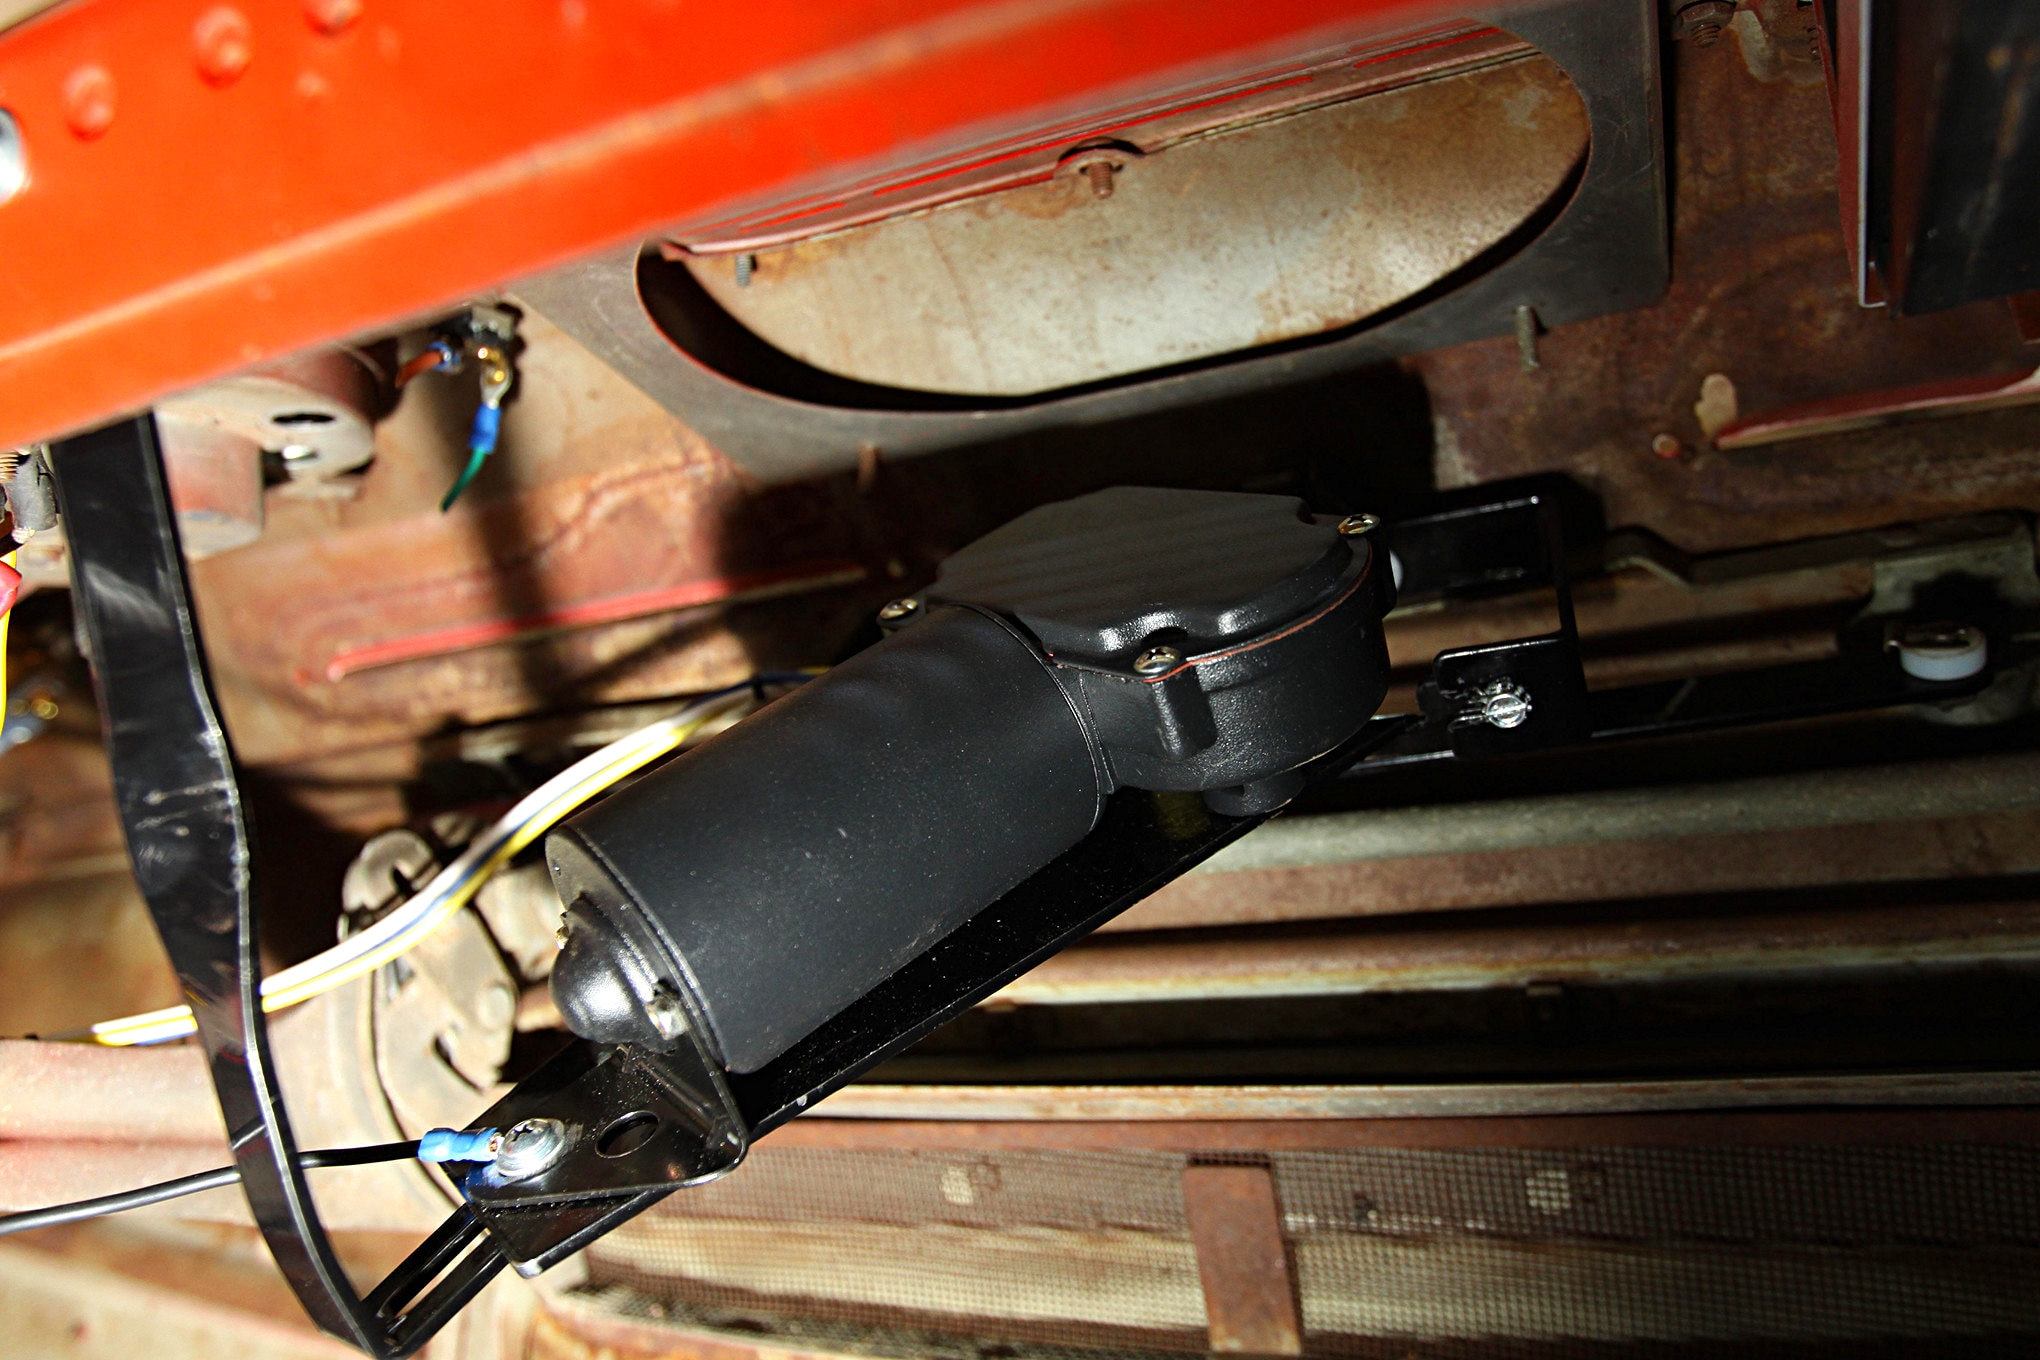 1951-ford-f-1-new-port-engineering-wiper-assembly-bolted-into-place